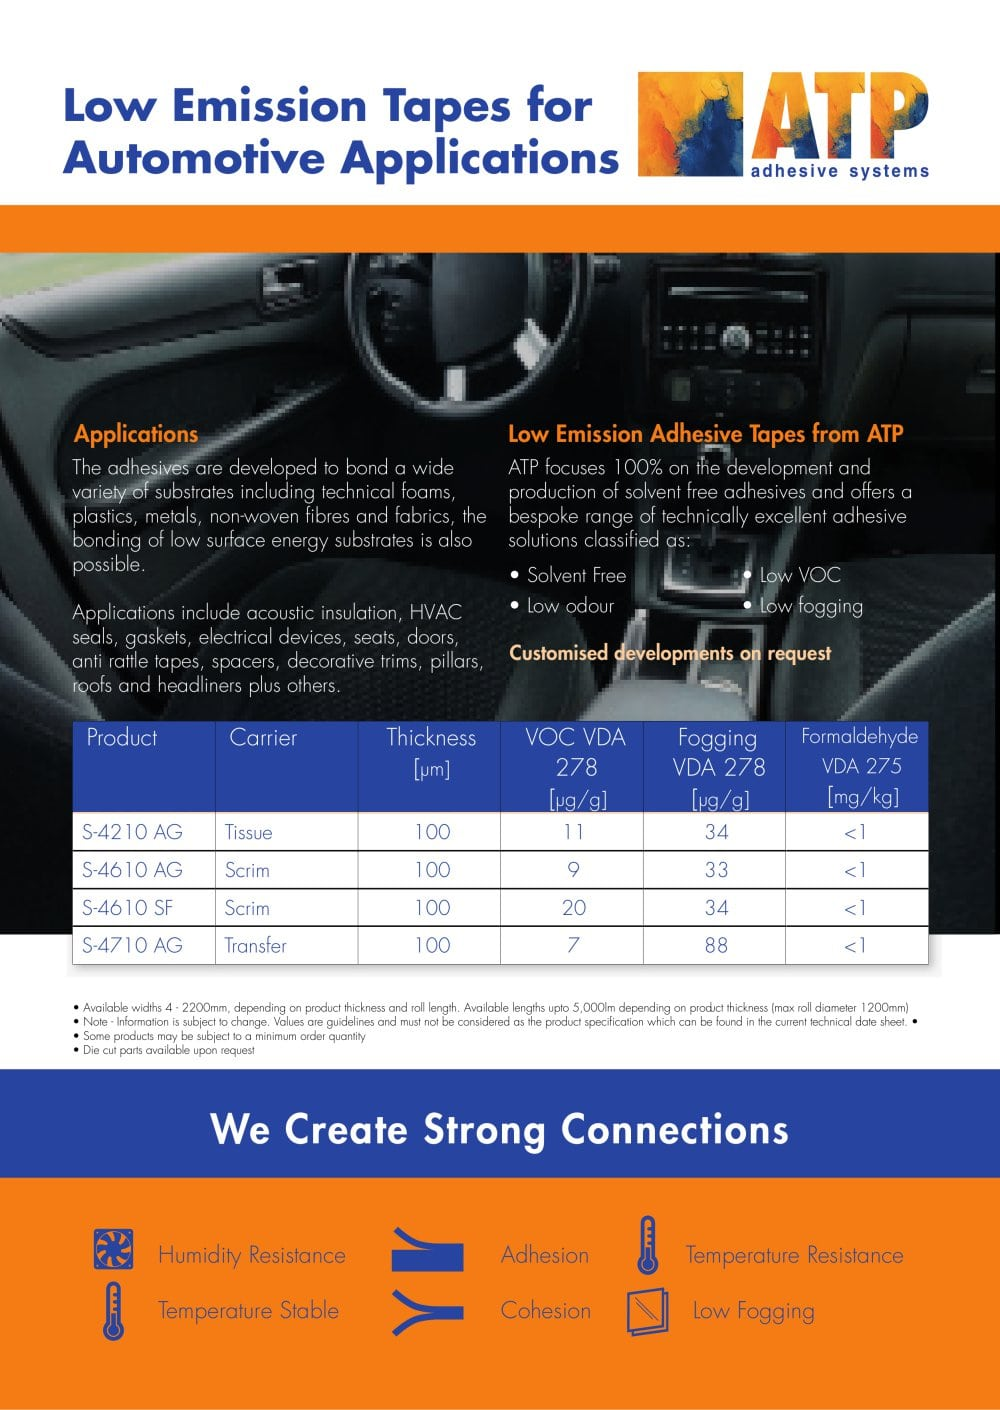 ATP Low Emission Tapes For Automotive Applications